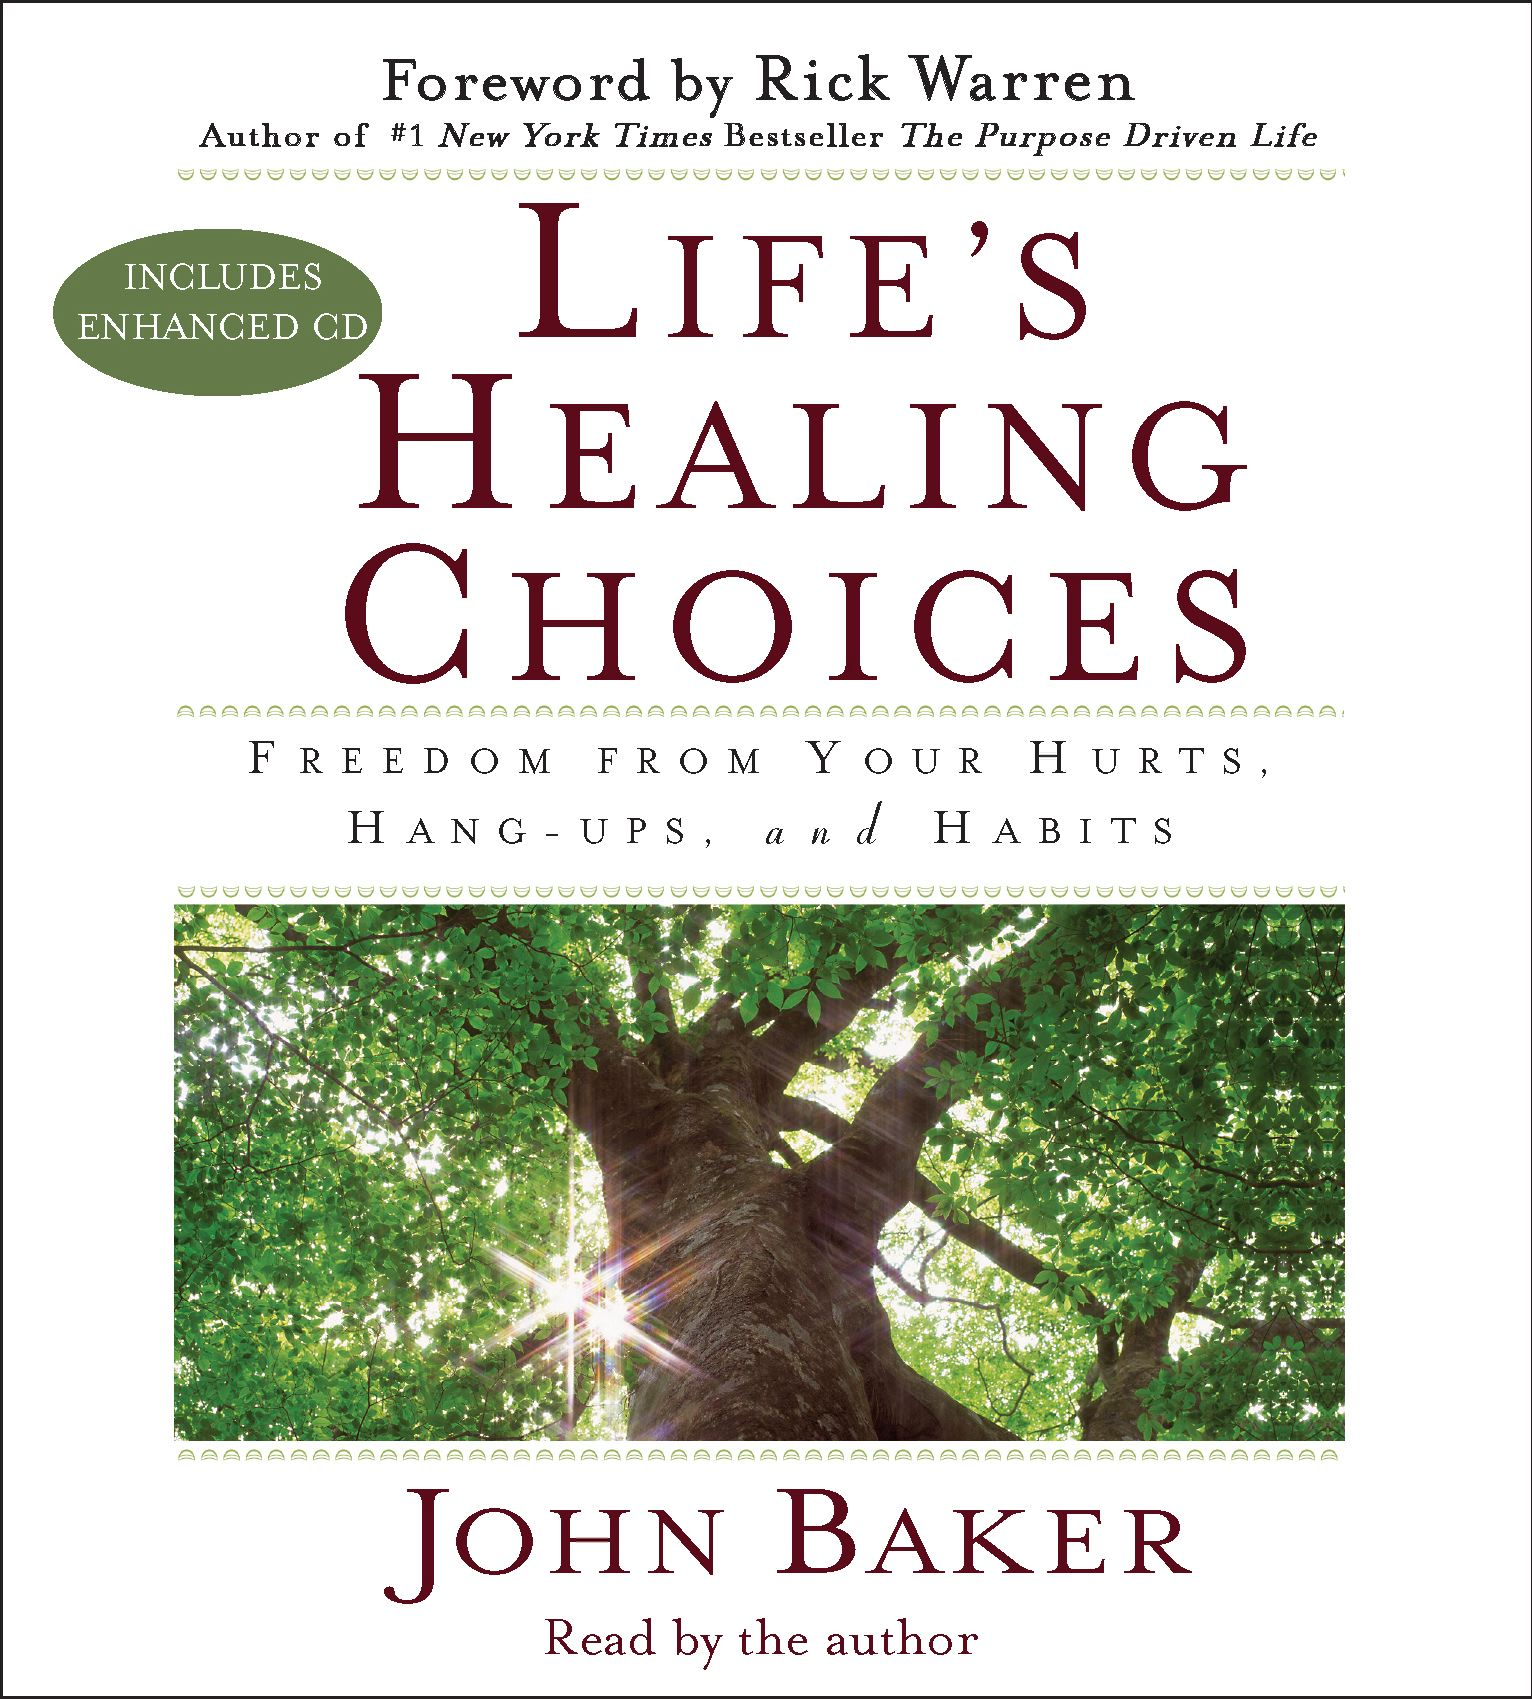 Life's Healing Choices Audiobook on CD by John Baker, Rick